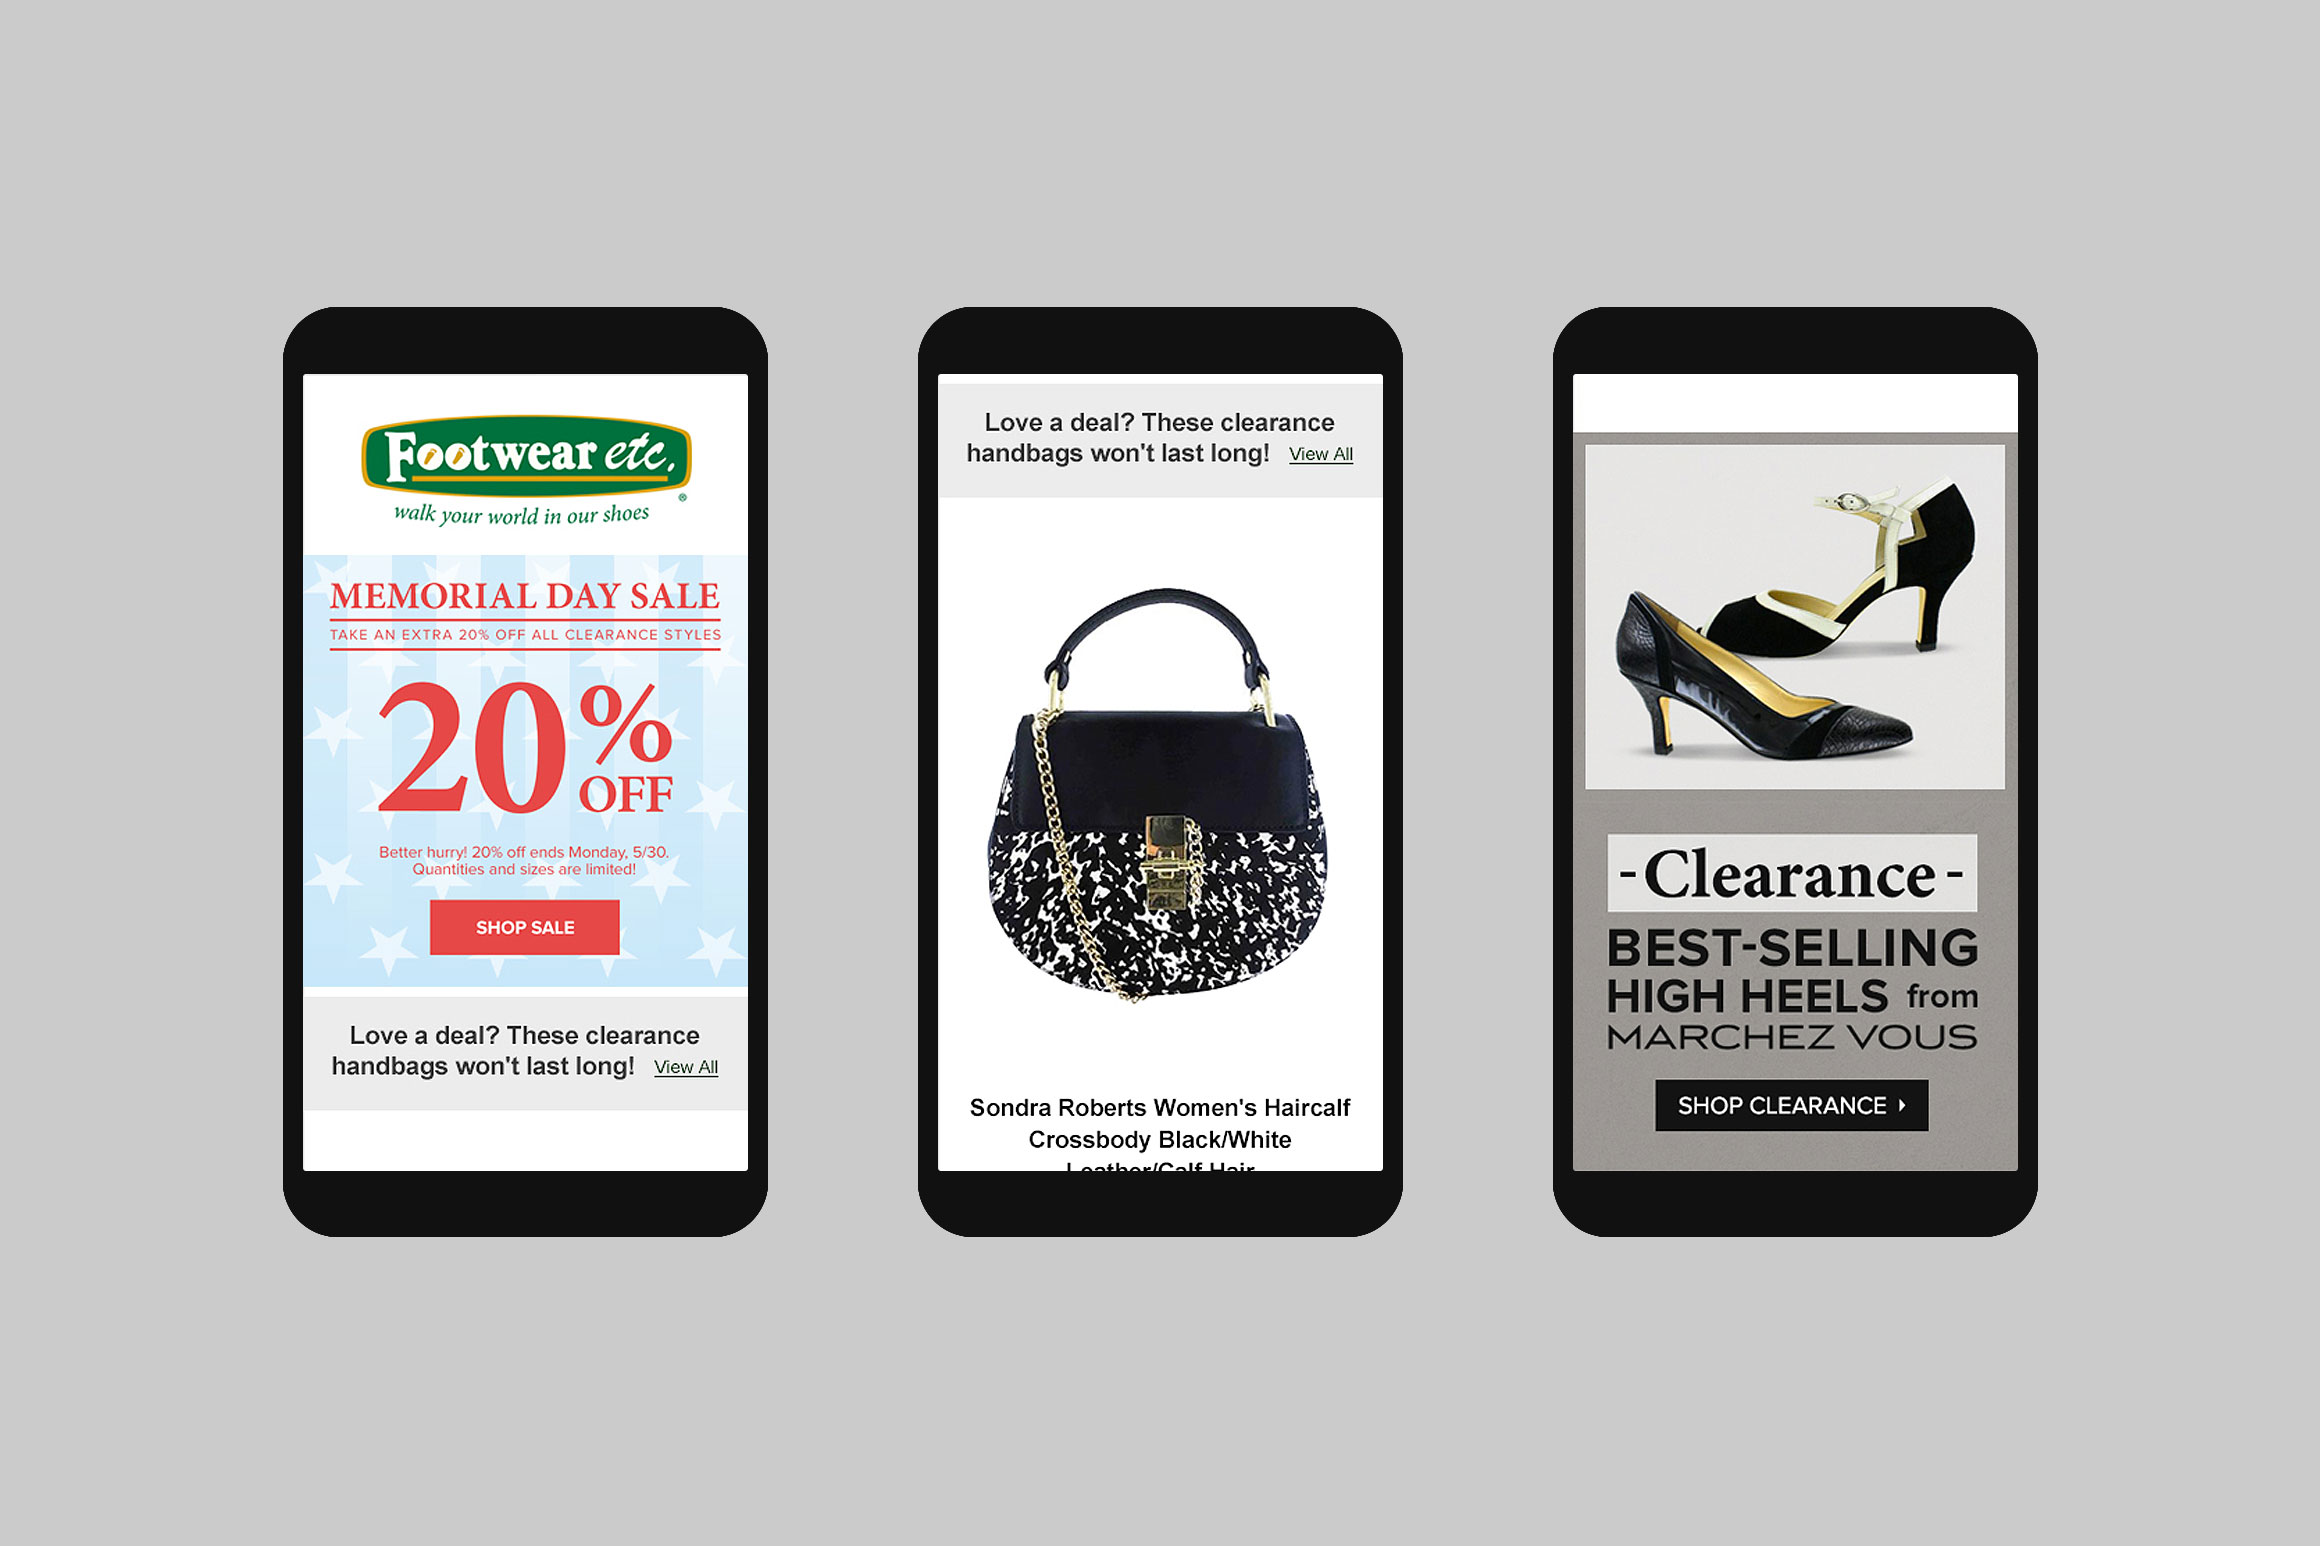 Footwear etc. Mobile Email Template #2